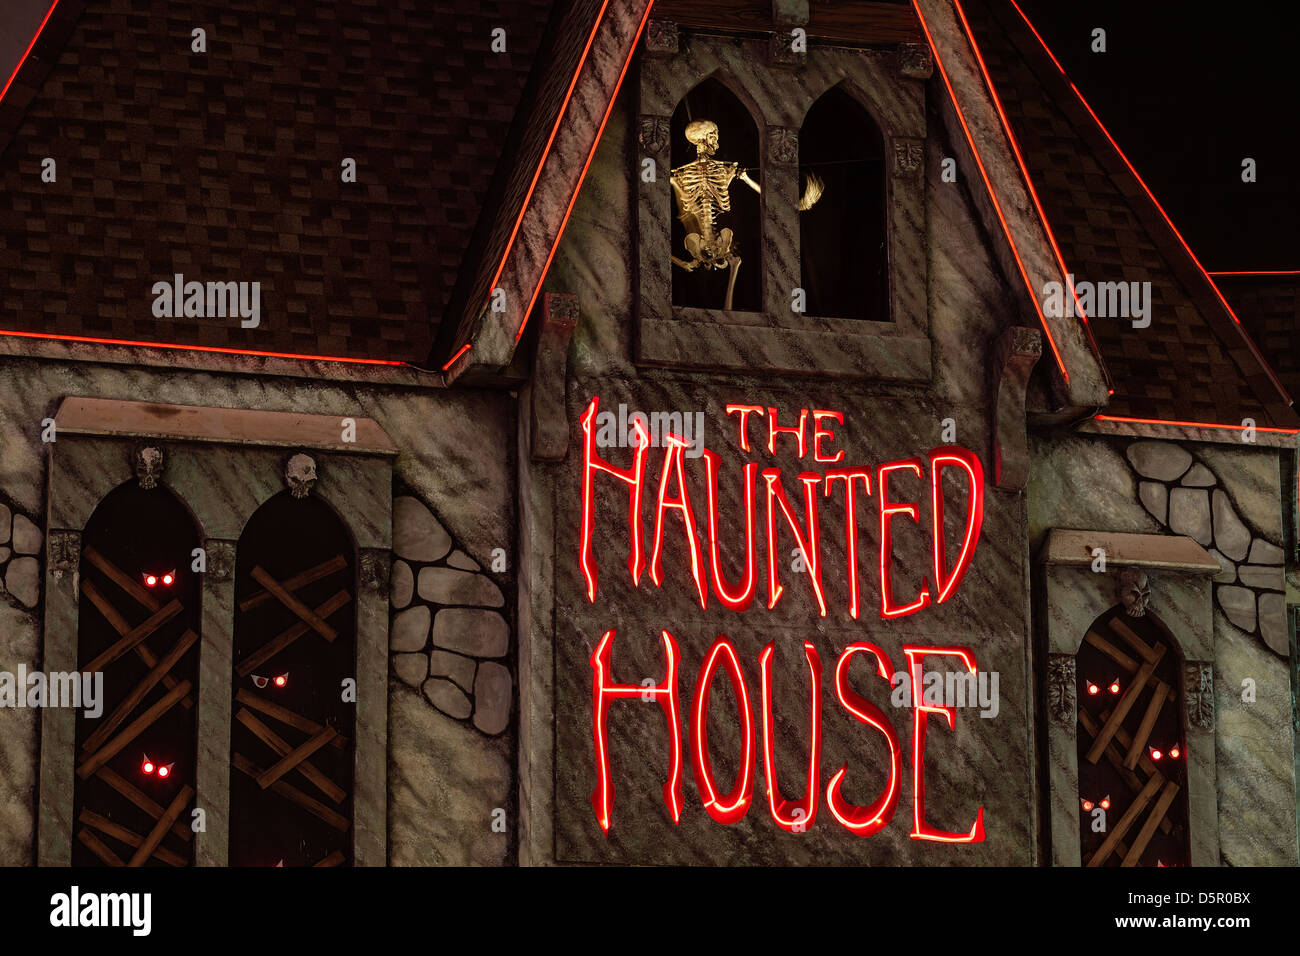 Haunted House at night - Stock Image